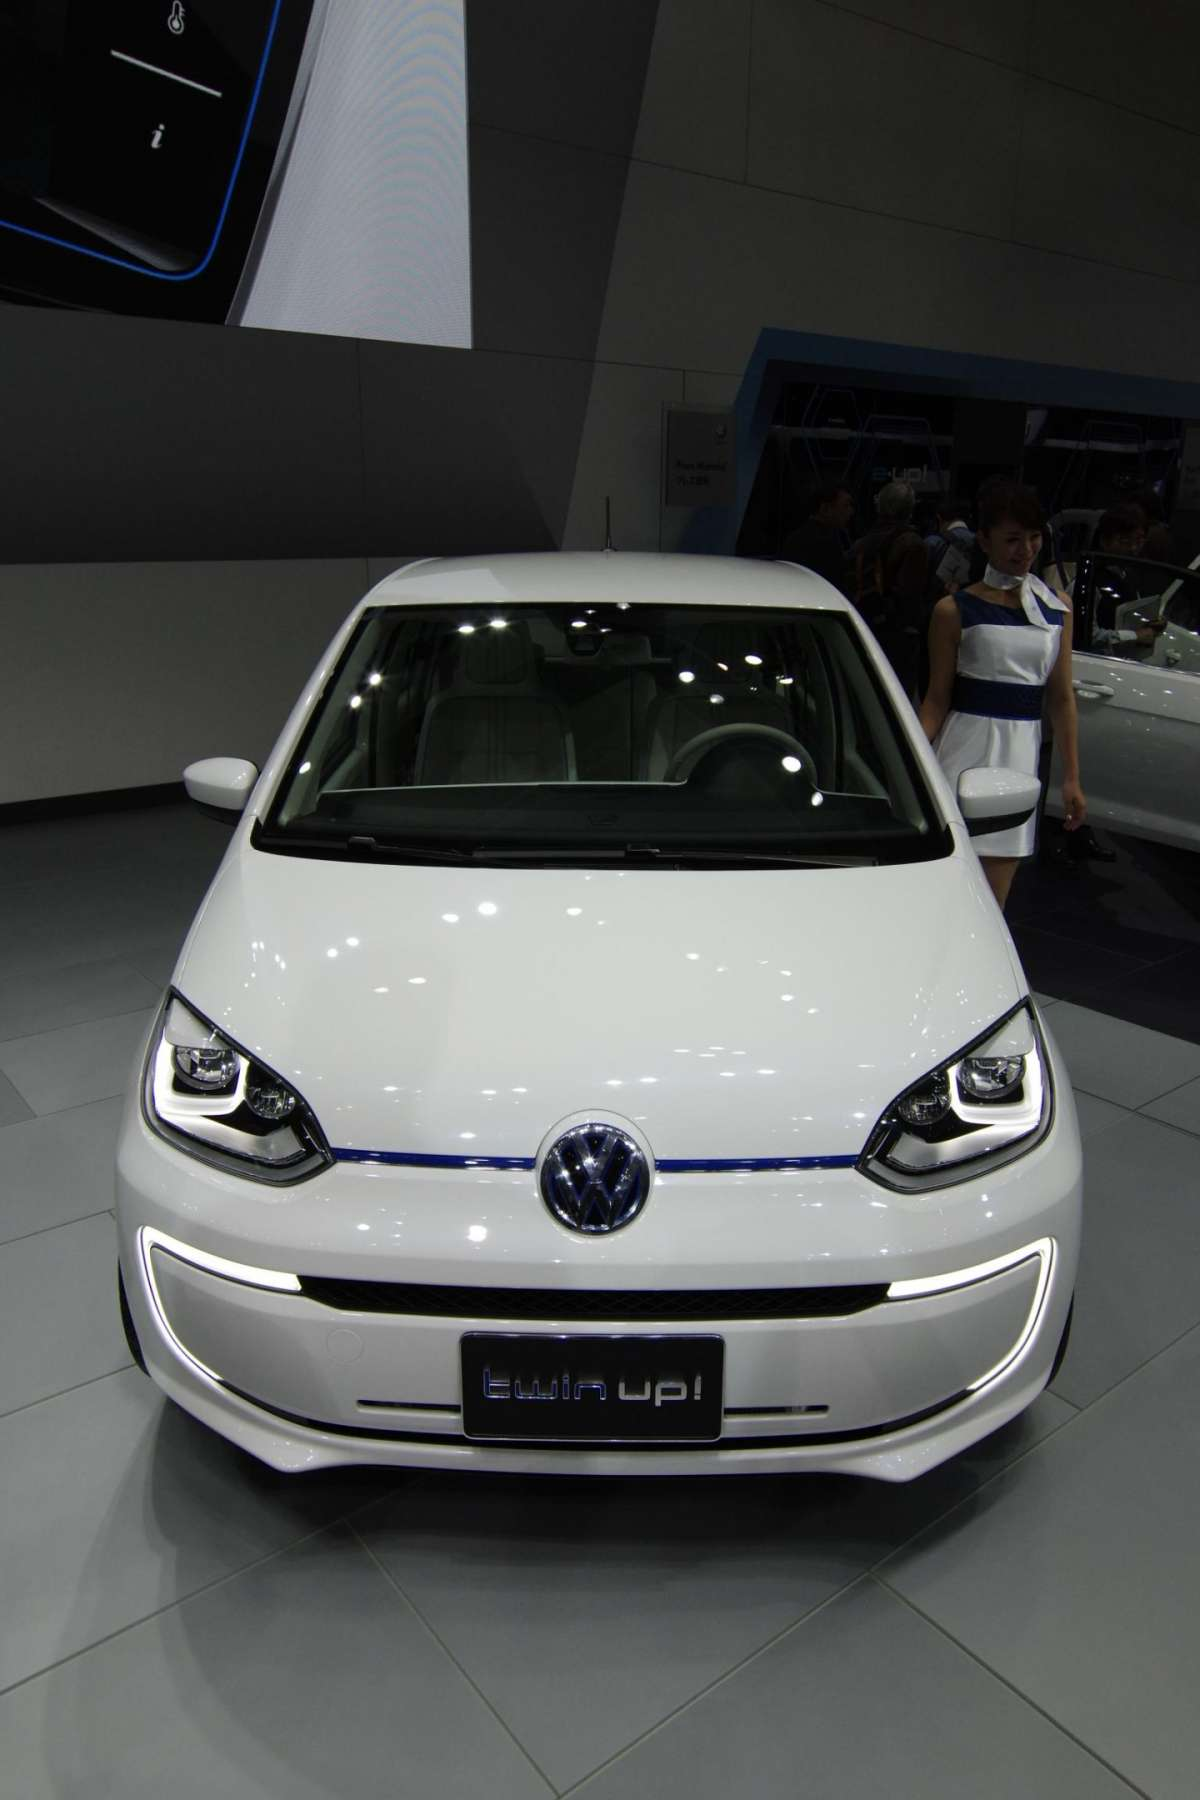 Volkswagen Twin-up! al Salone di Tokio 2013 - 01